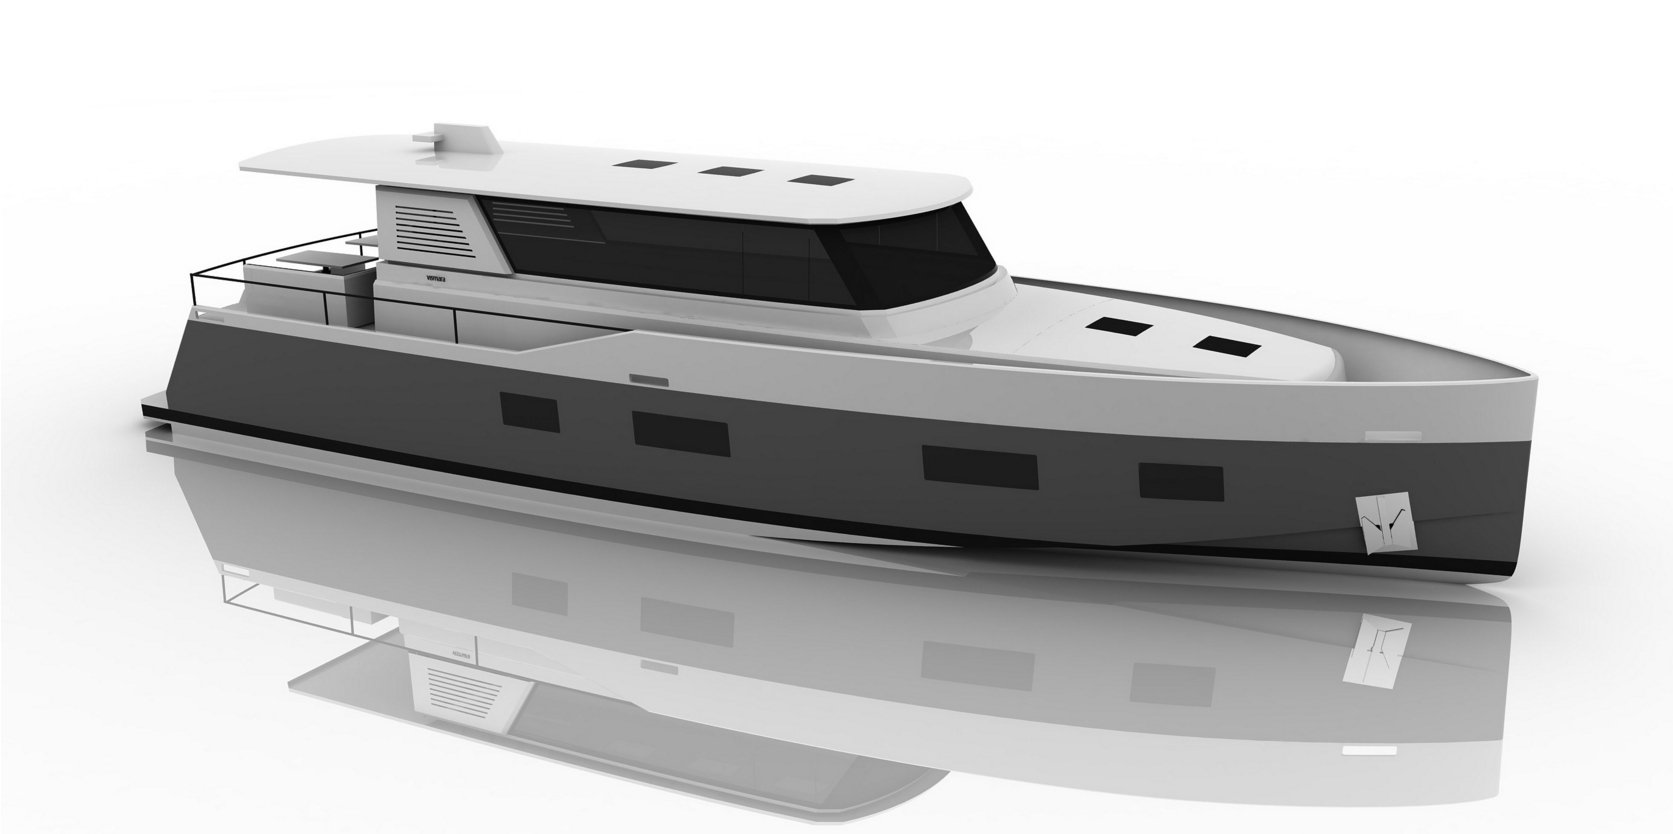 Vismara MY54 starboard side rendering